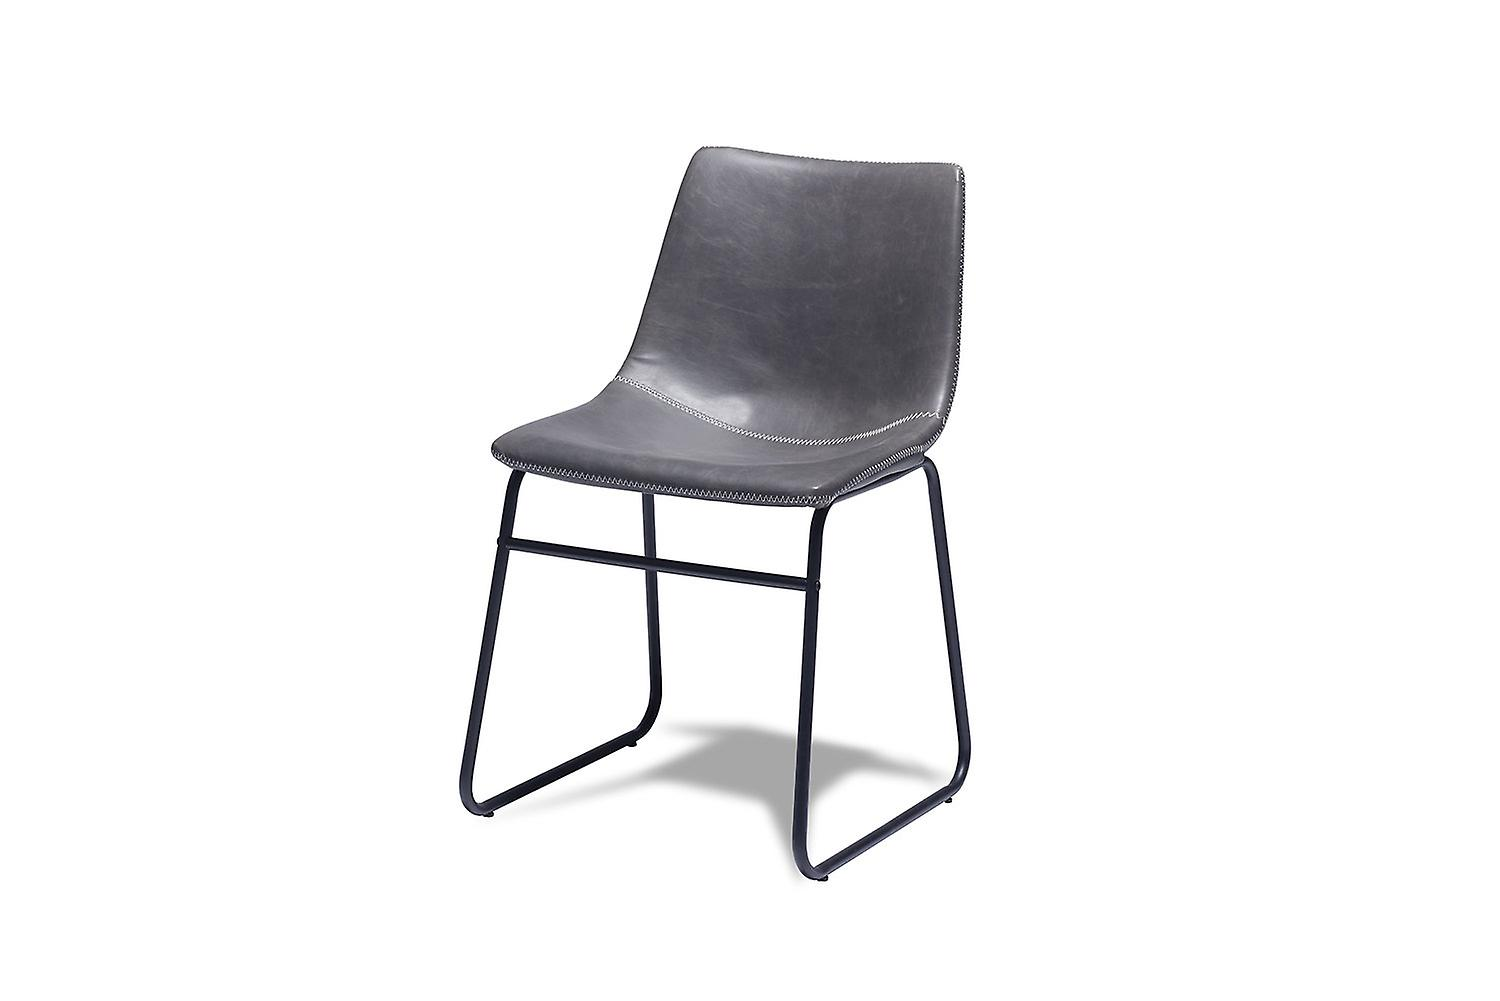 Furnhouse Indiana Dining Chair, Grey, Metal Base, 46x54x78 cm, Set of 2